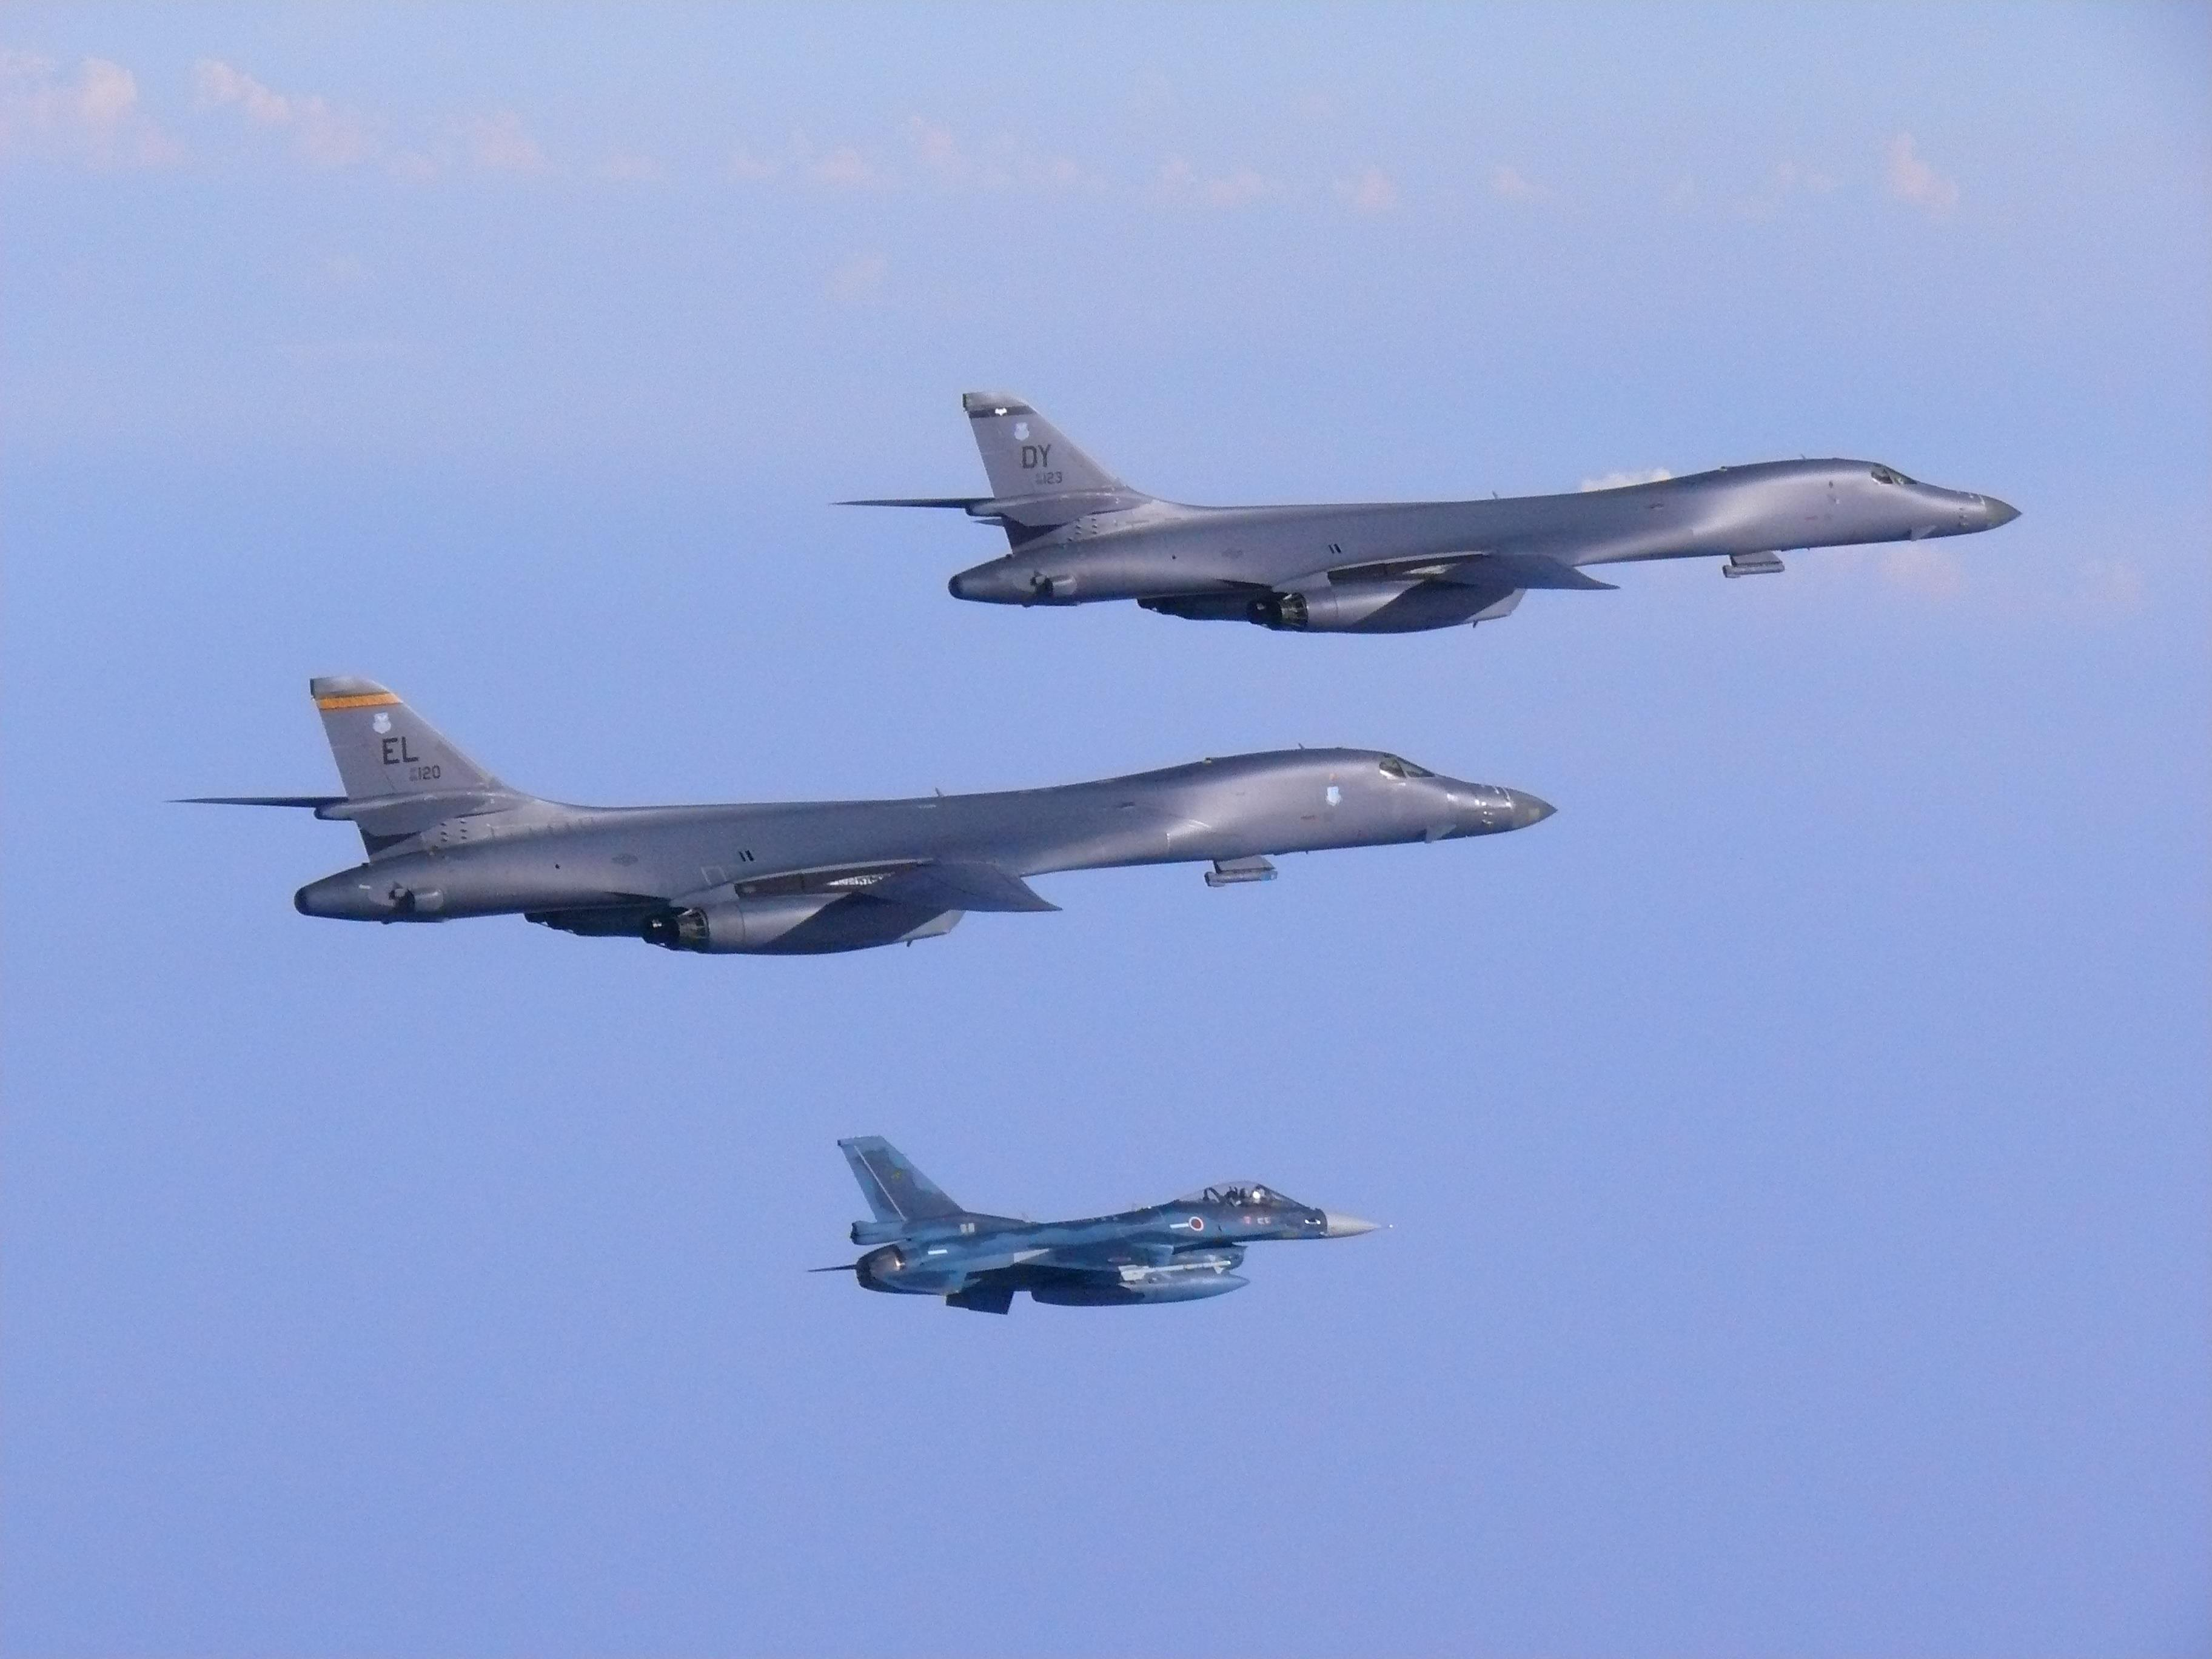 Two U.S. Air Force B-1B Lancers fly from Andersen Air Force Base, Guam, into Japanese airspace and over the Korean Peninsula, July 30, 2017. The B-1s made contact with Japan Air Self-Defense Force F-2 fighter jets in Japanese airspace, then proceeded...